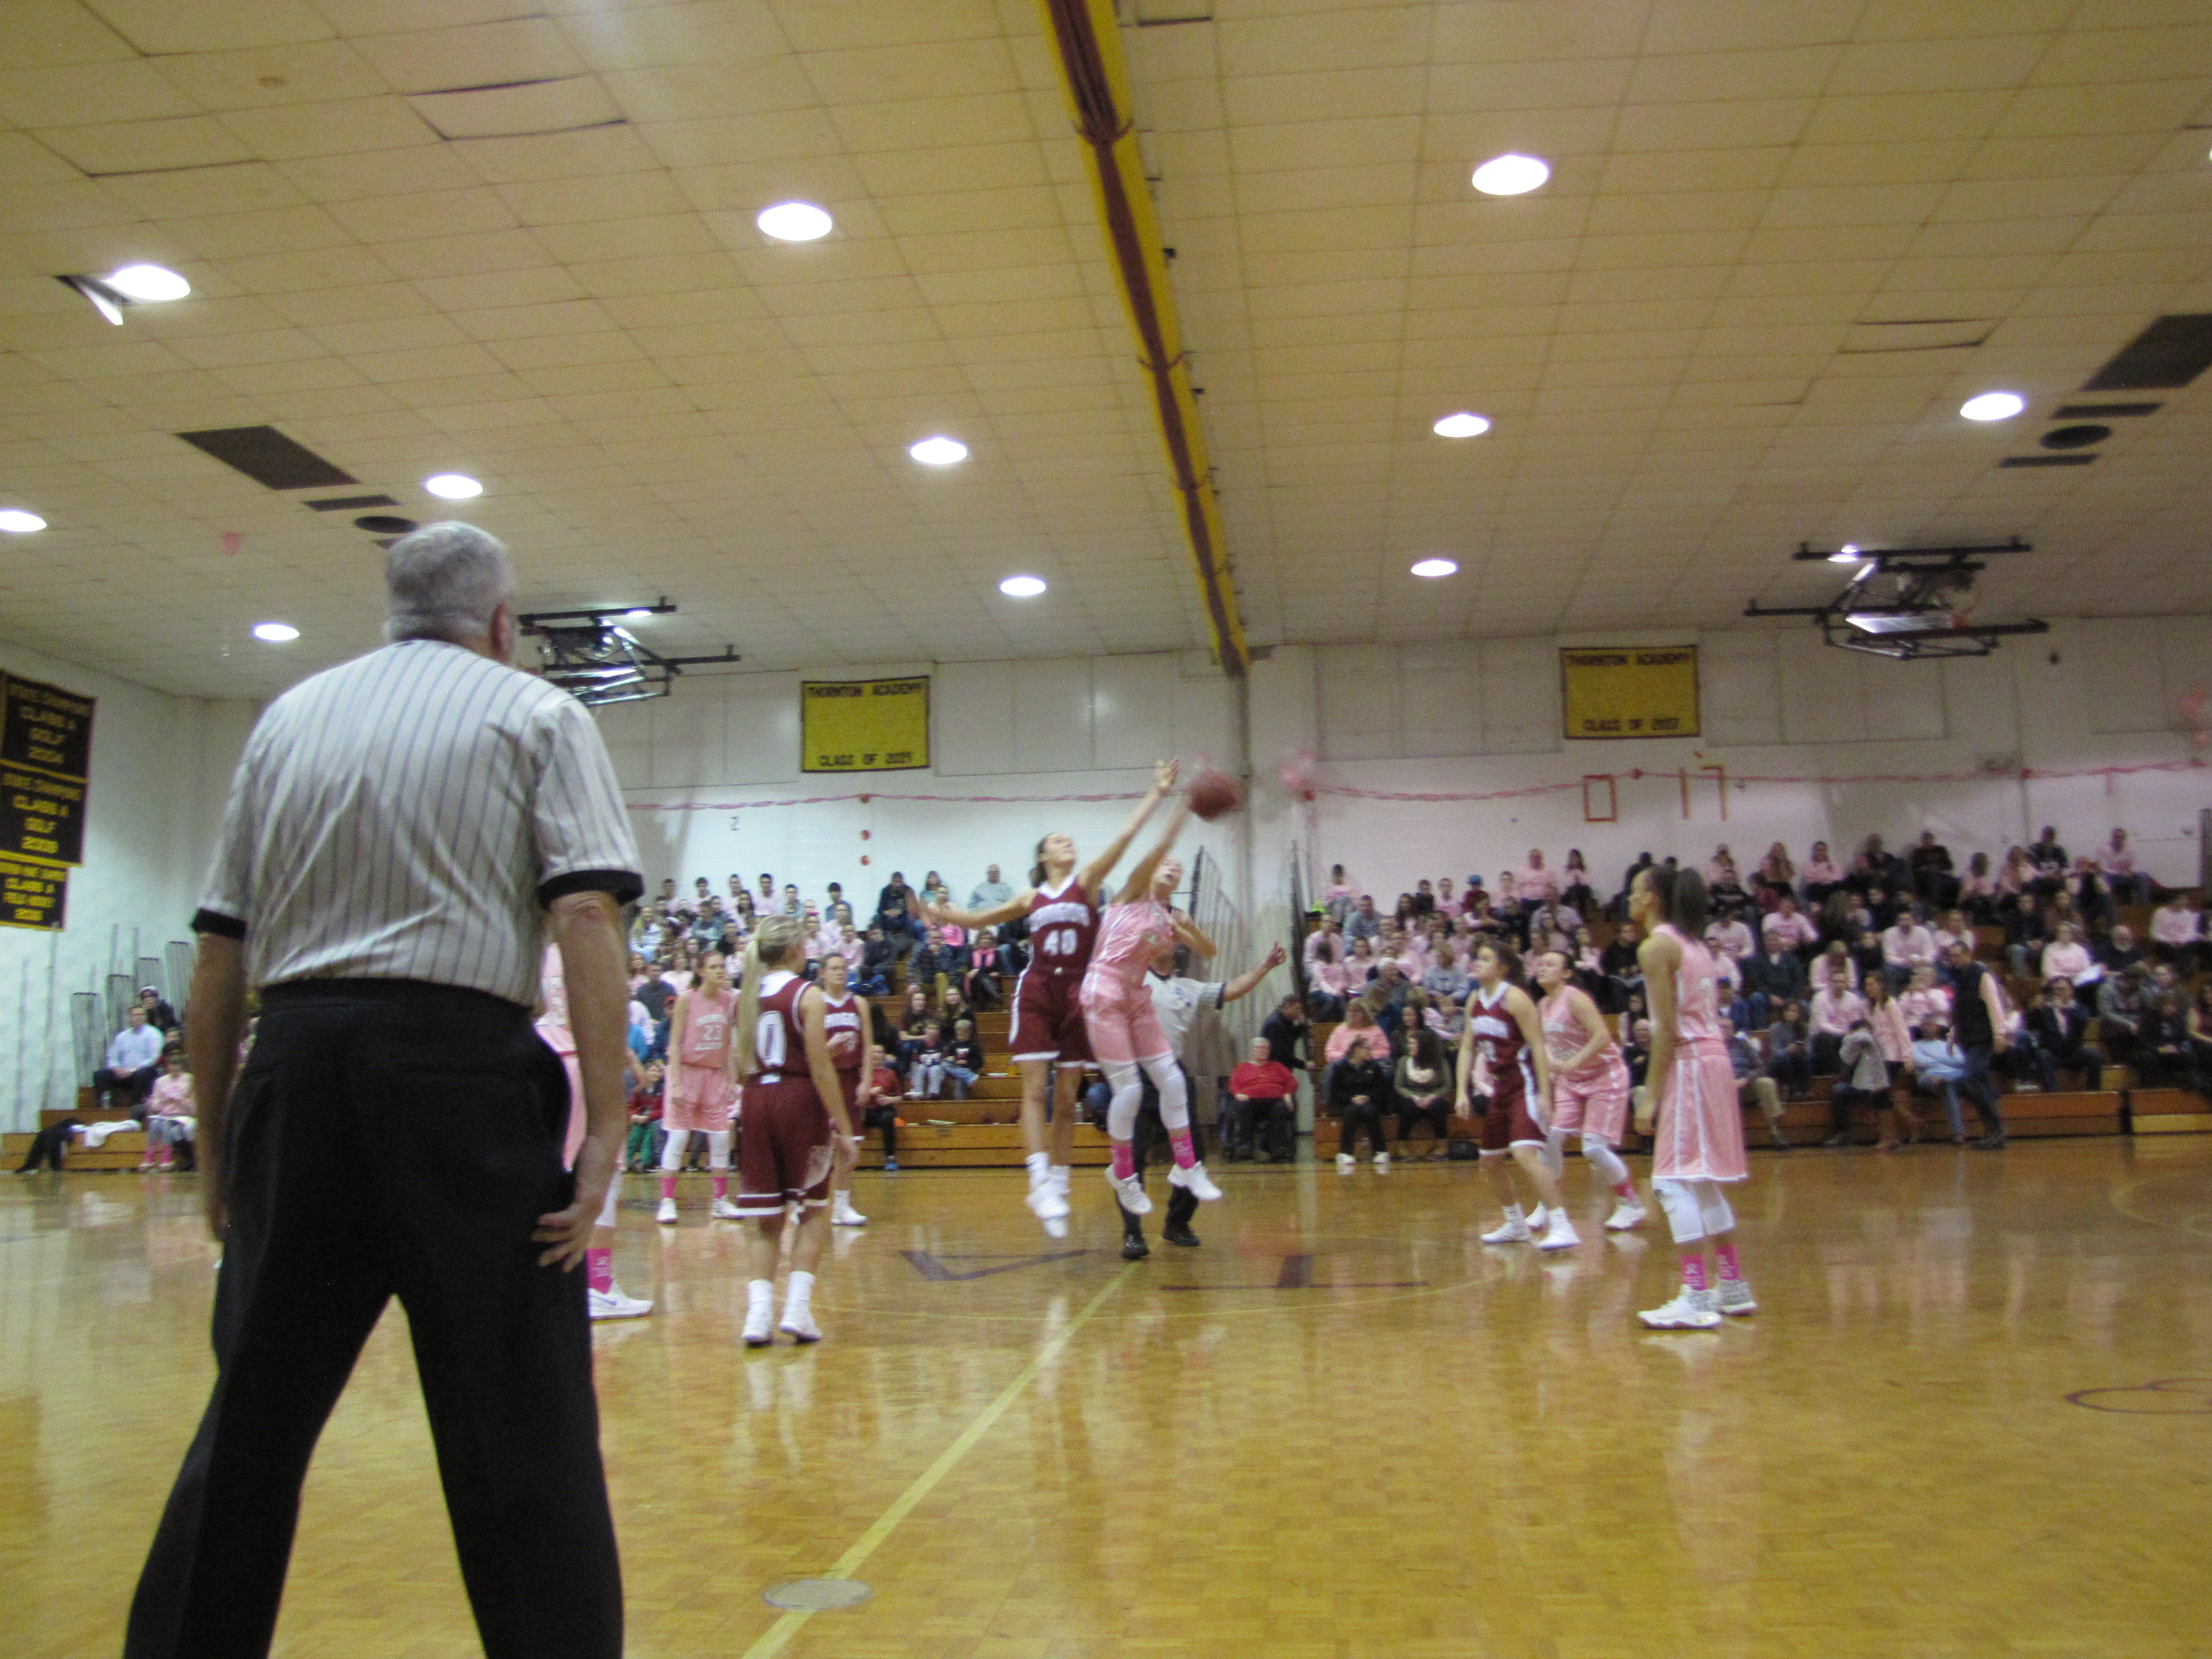 TAYLOR MORRISON/JOURNAL TRIBUNETA varsity girls play Bangor during the Hoops for Hope cancer research fundraiser at Thornton Academy Saturday evening.